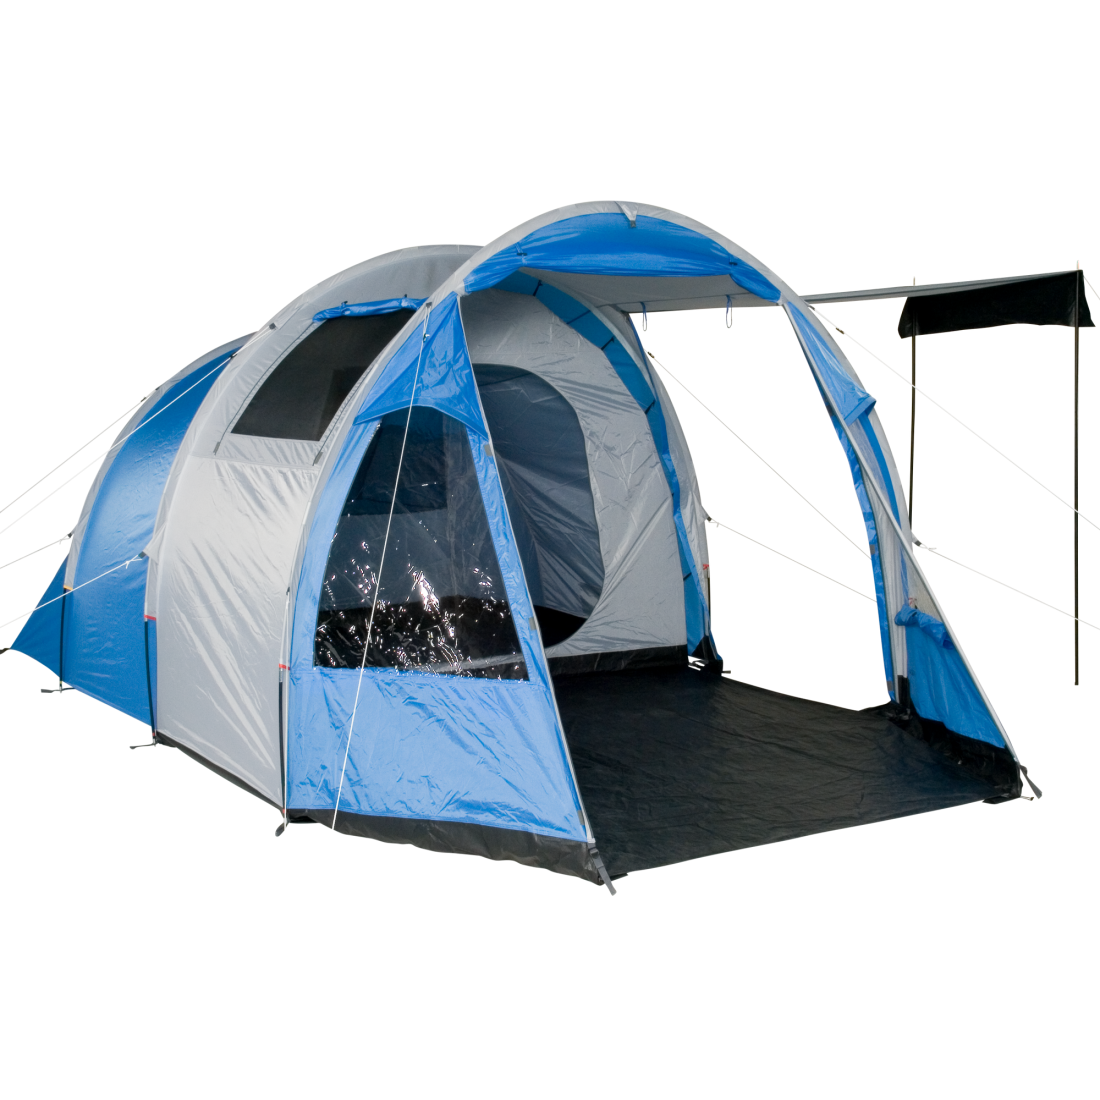 Fridani - TSB 400 - Image 1  sc 1 st  C&ing-Outdoor.eu & Buy Fridani TSB 400 - 4-person tunnel tent with vestibule 3000mm ...